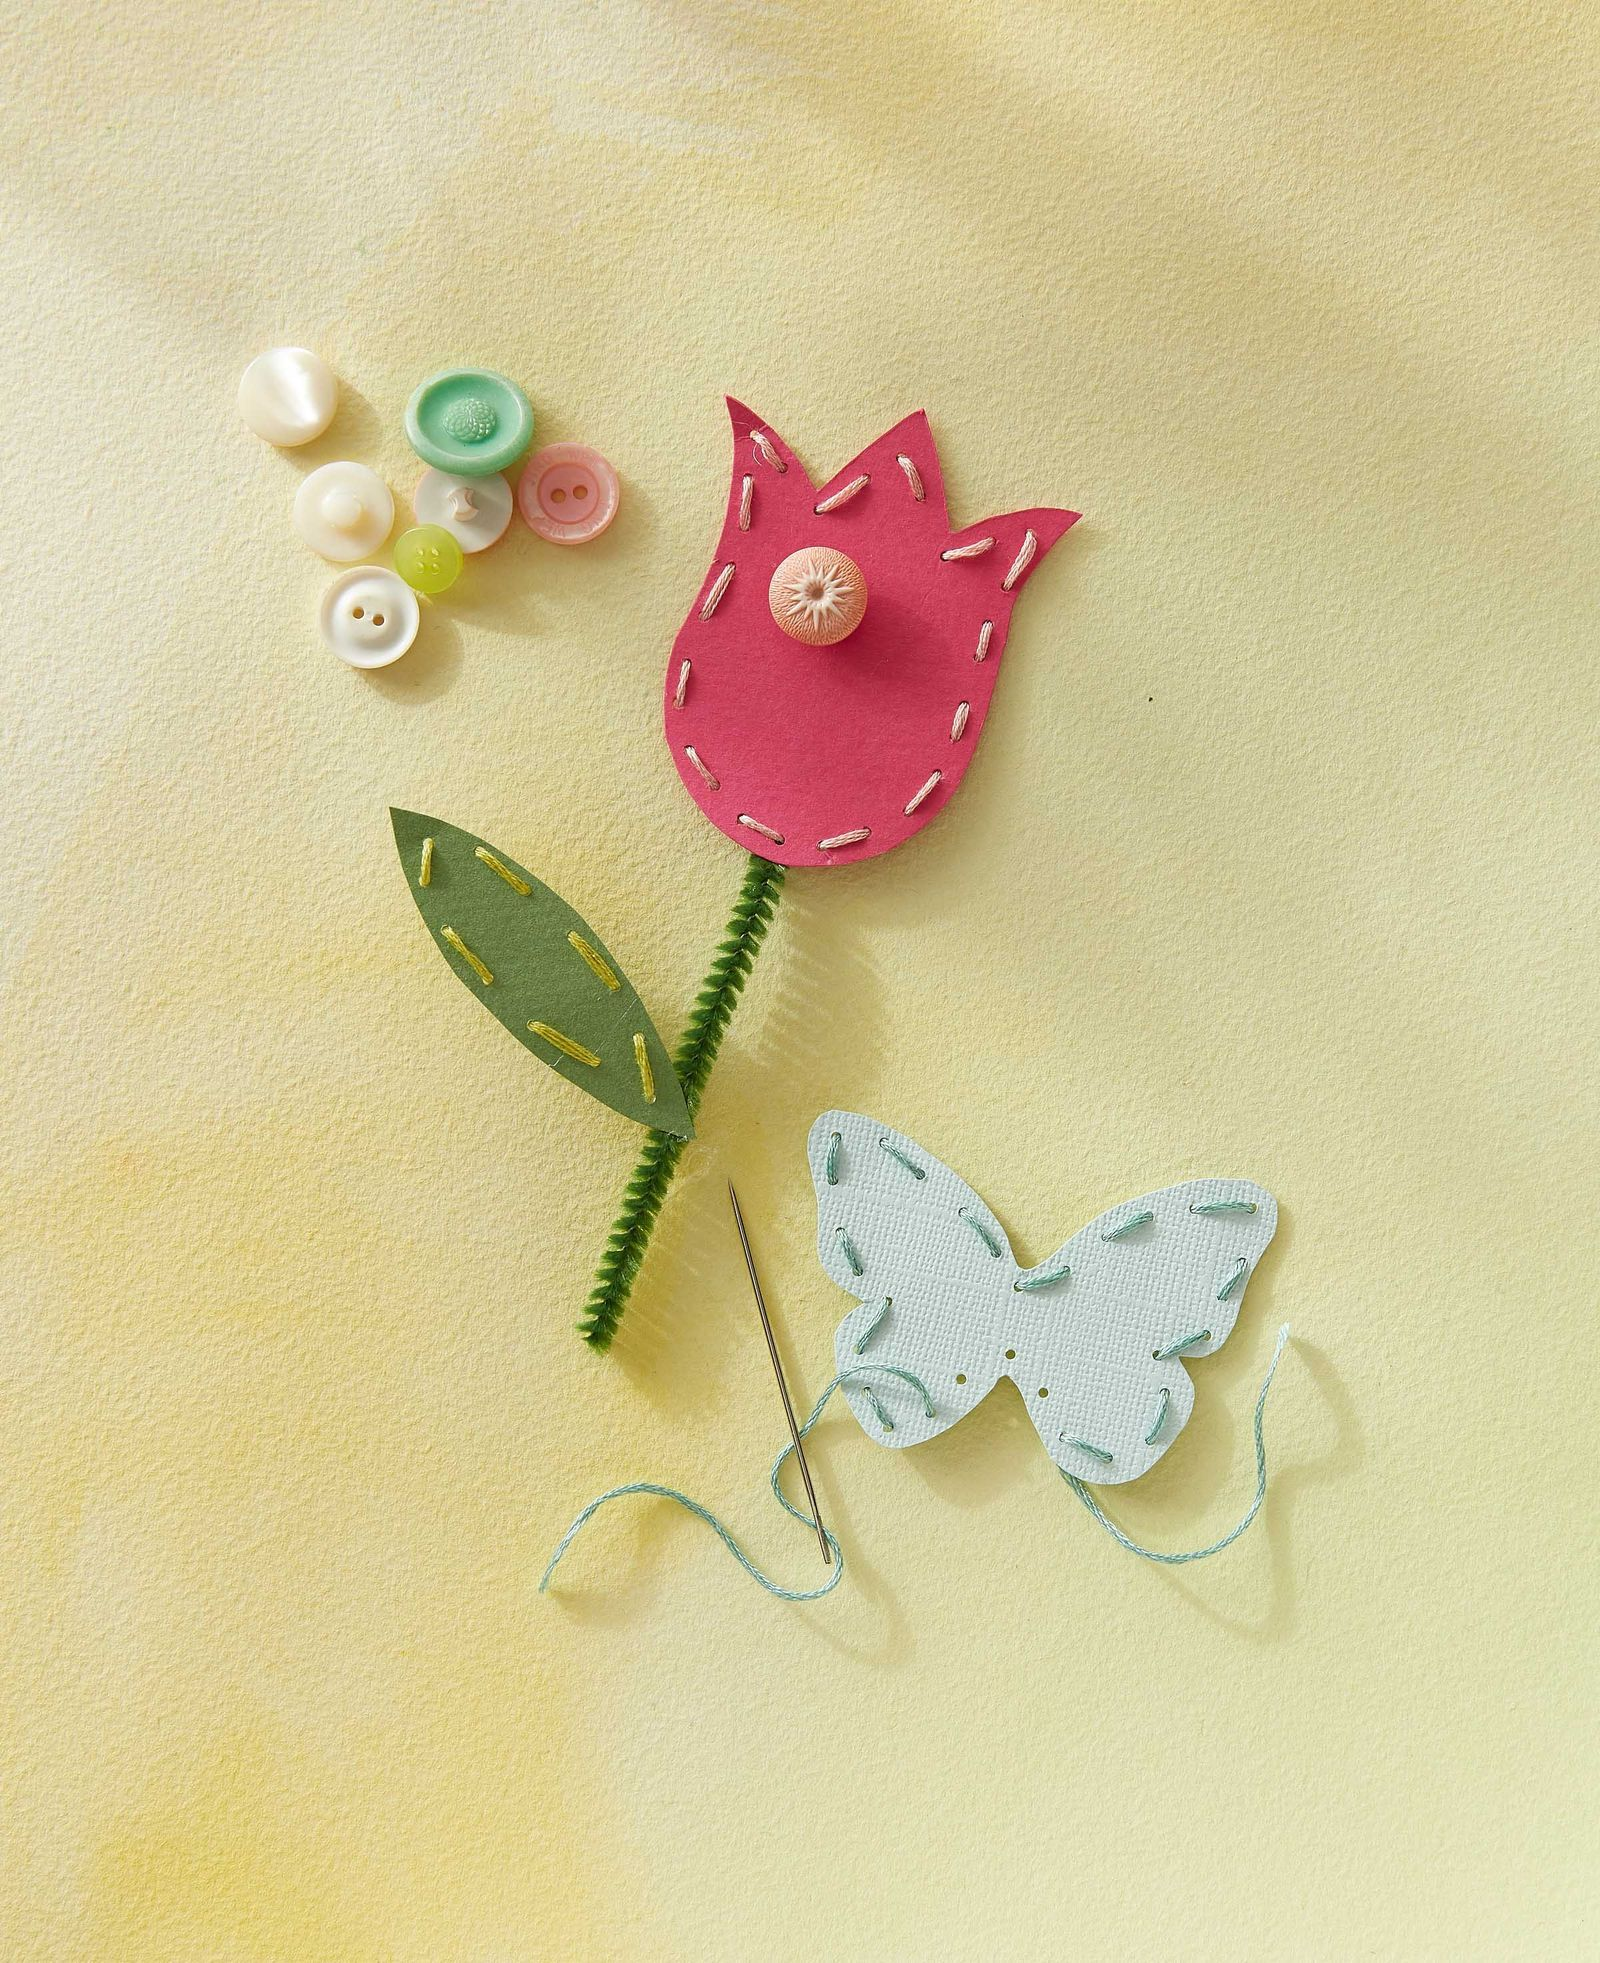 These Mother's Day Crafts Make for the Sweetest Gifts From Kids